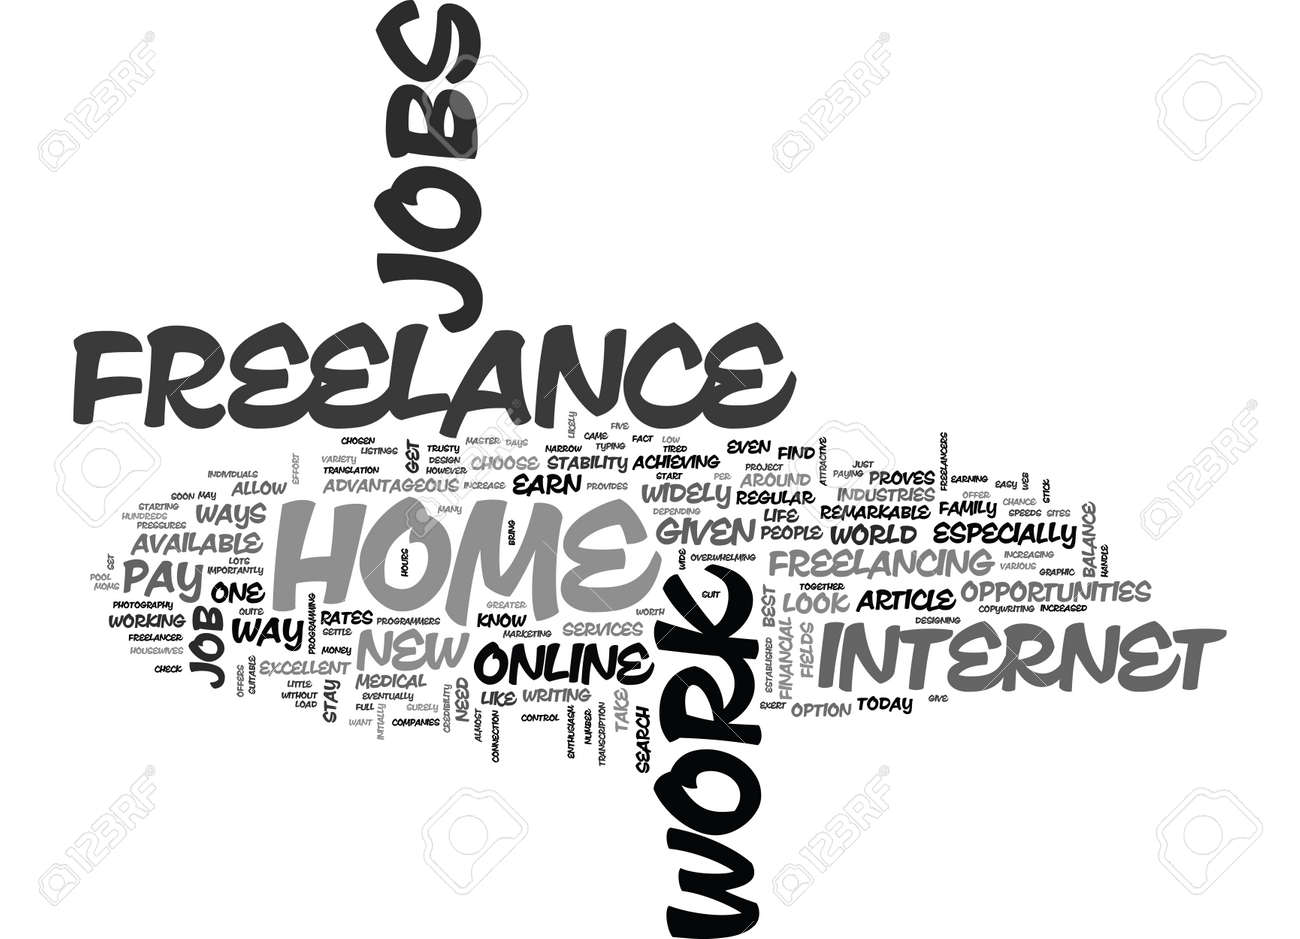 WORK FROM HOME THROUGH ONLINE FREELANCE JOBS TEXT WORD CLOUD